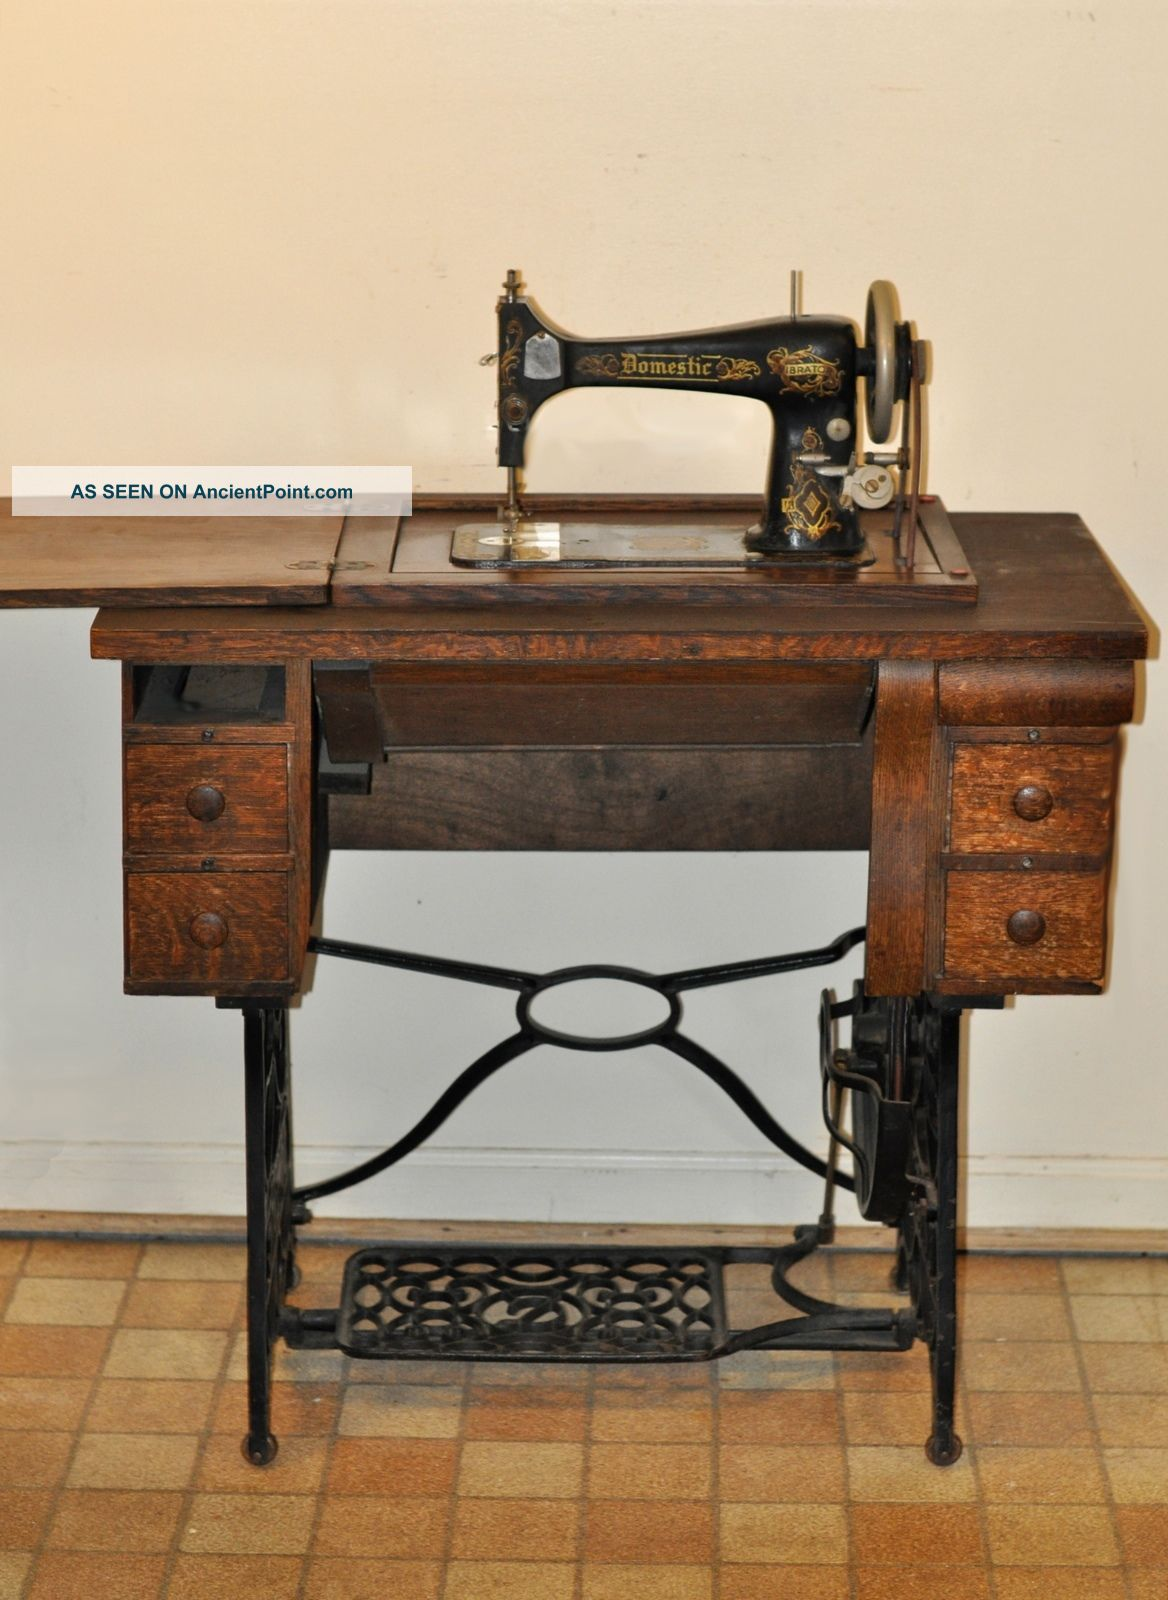 Antique Domestic Treadle Sewing Machine